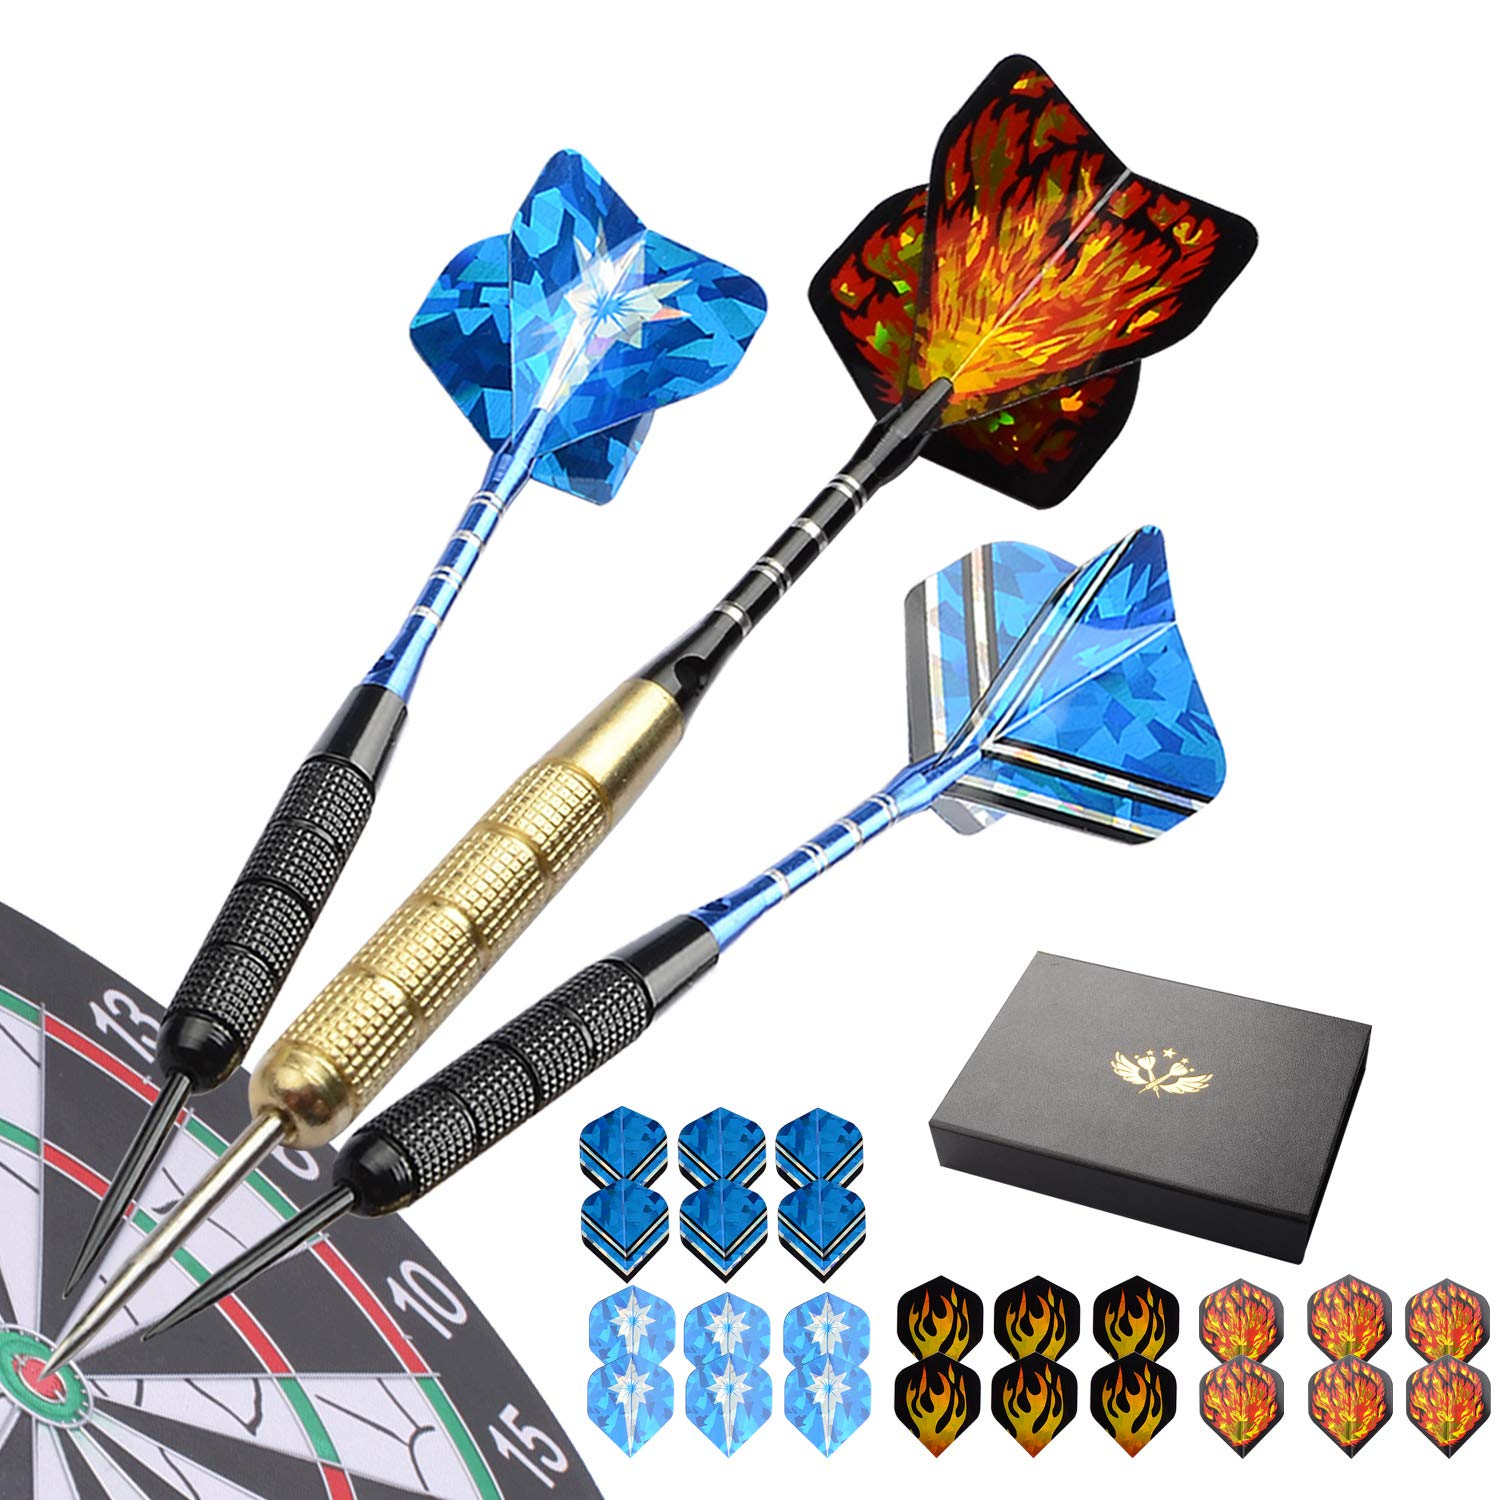 Migargle 12 Pack Steel Tip Darts Set 20 Grams with Nonslip Iron Barrel + Aluminum Dart Shafts + 4 Style Flights + Darts Sharpener + Darts Tool and Case